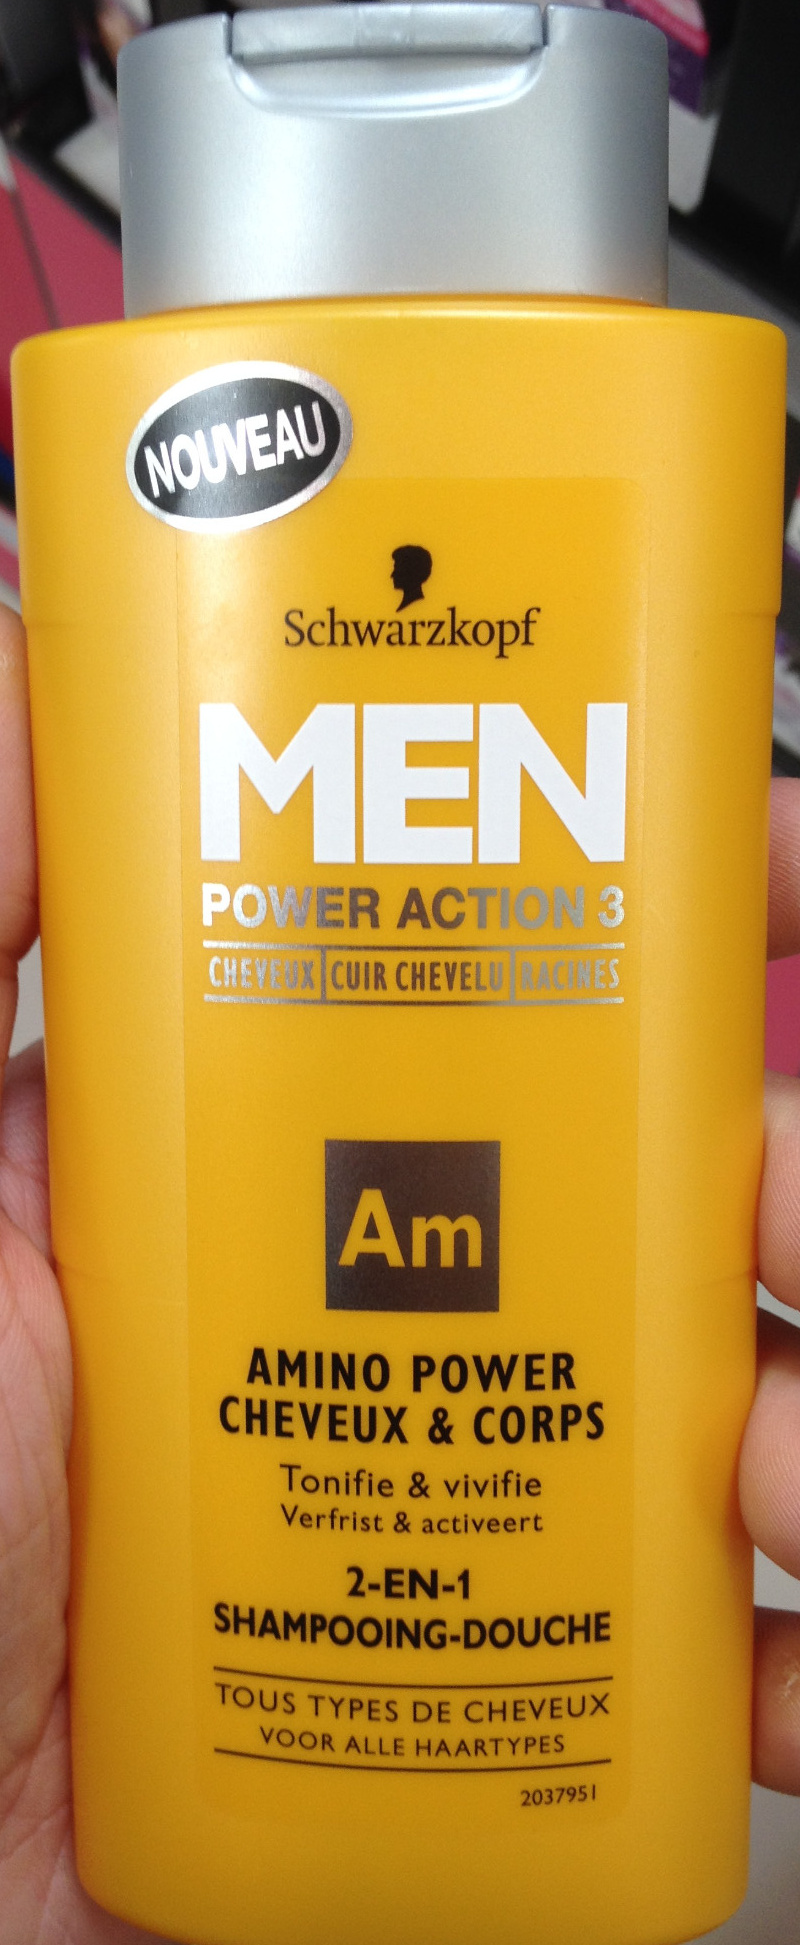 Amino Power cheveux & corps - Product - fr